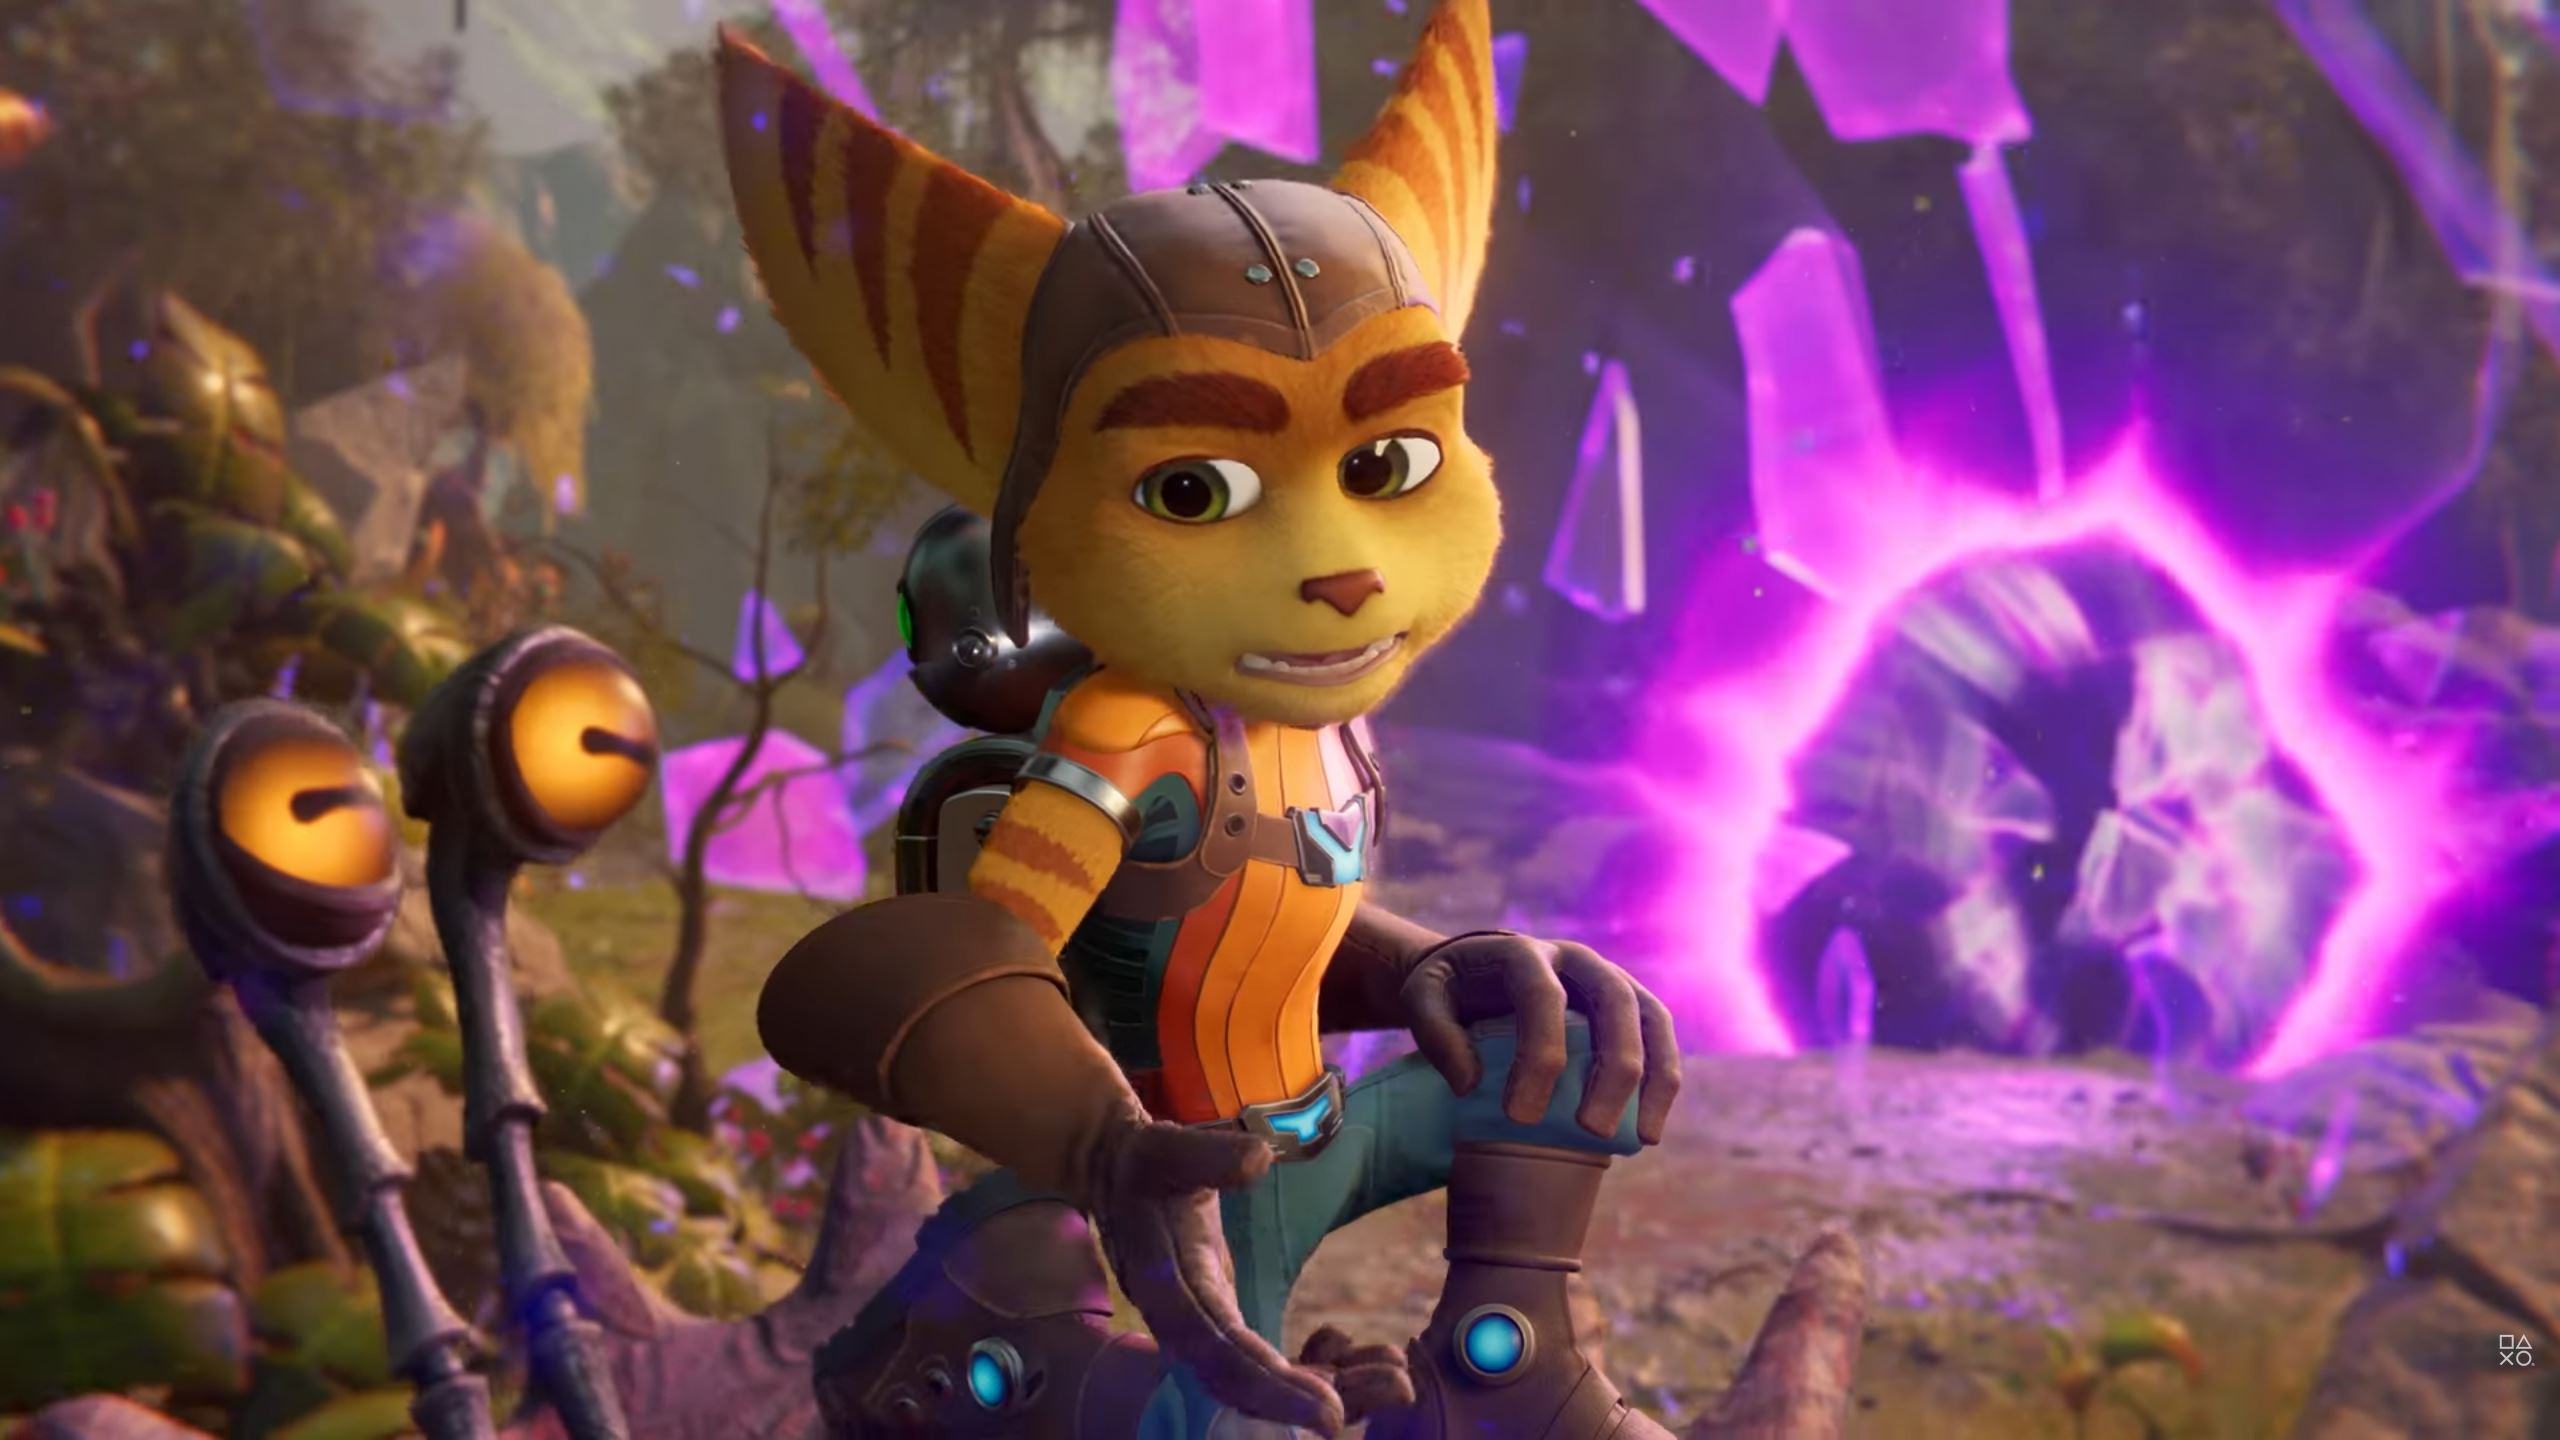 Ratchet And Clank Rift Apart Pc Will It Be Released On Gamewatcher